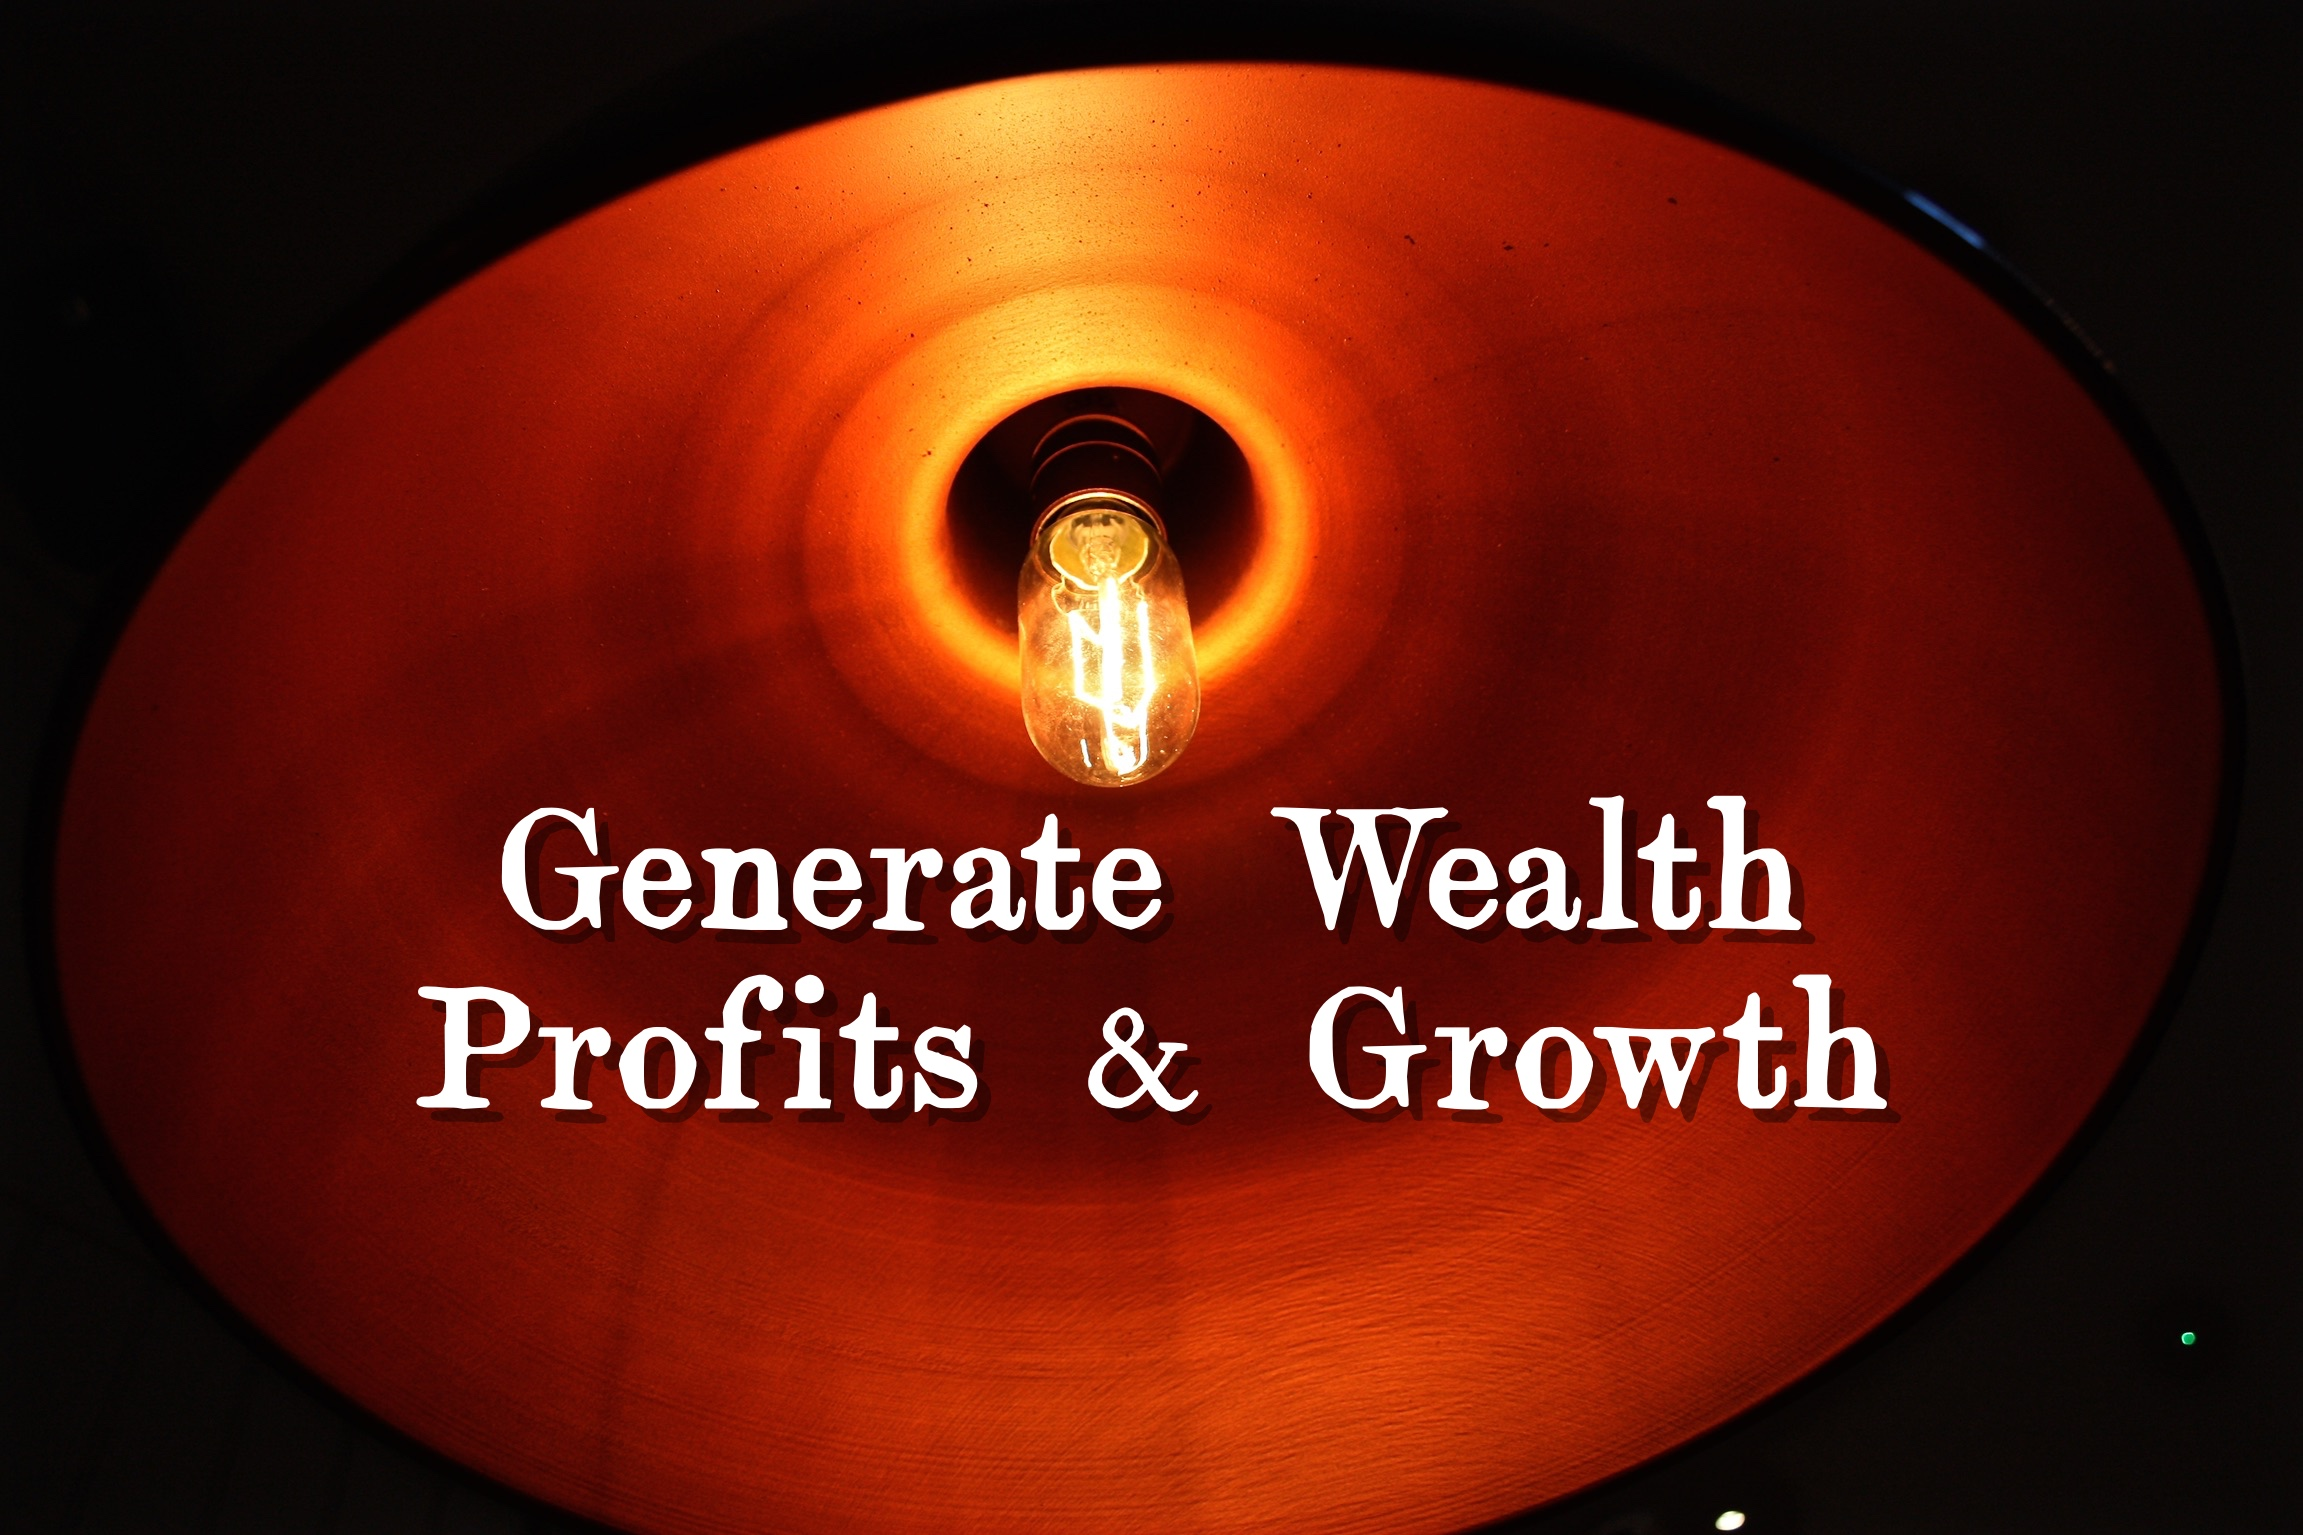 12. Generate Wealth 2.jpg